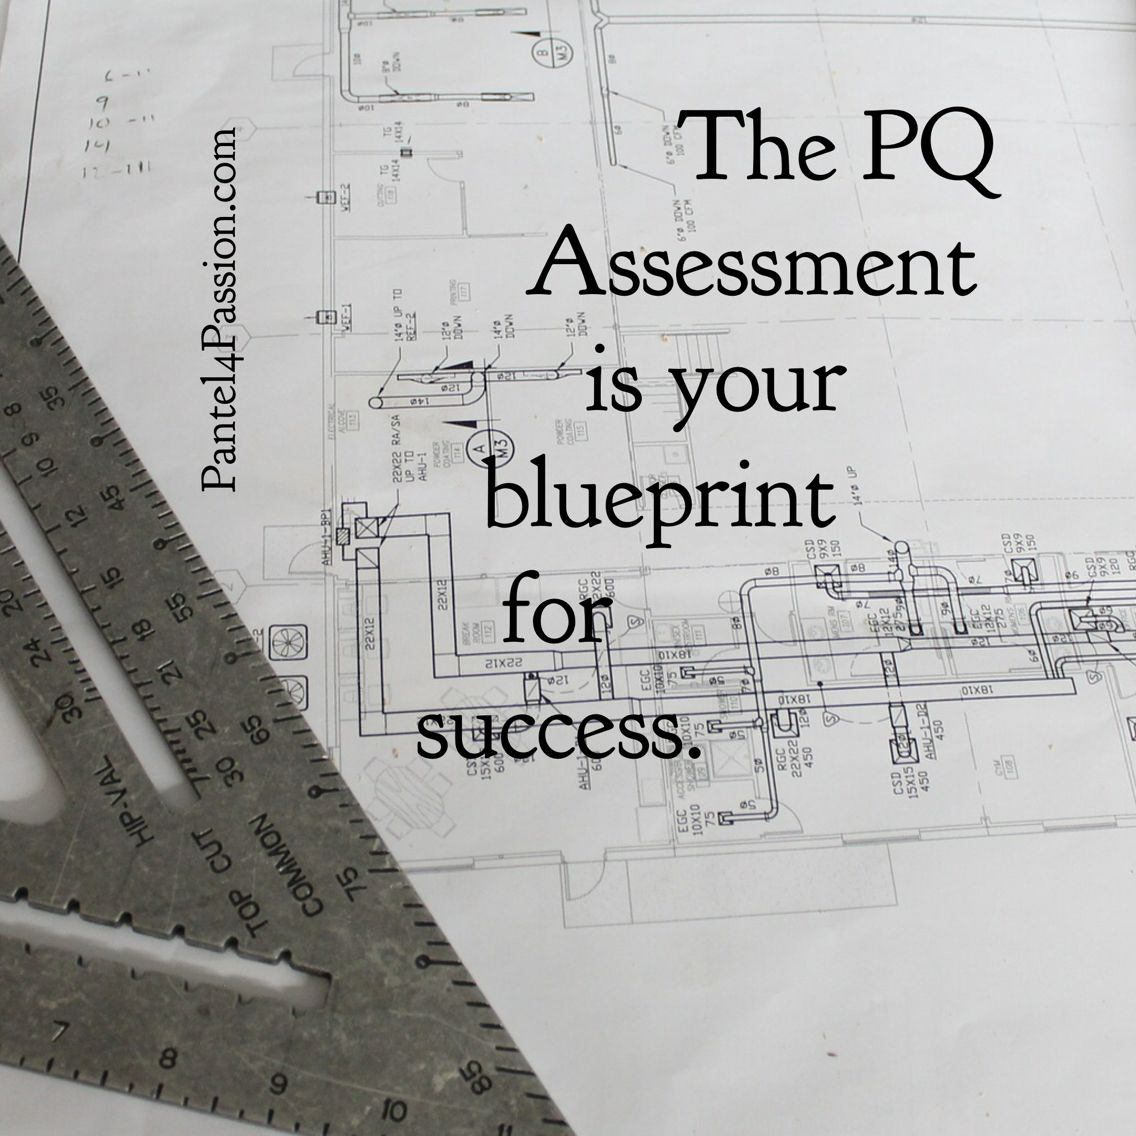 Now you can take the PQ Assessment without providing any information.  The Assessment  takes about 25 minutes and includes 96 questions.  It's an excellent blueprint for success in that it maps out how you fit into several different dimensions.  Based on your responses you will become more self-aware of your success traits.  The results can be a game-changer in how you approach the things that you do.   It's all about BRANDING.   #passion #branding #epic